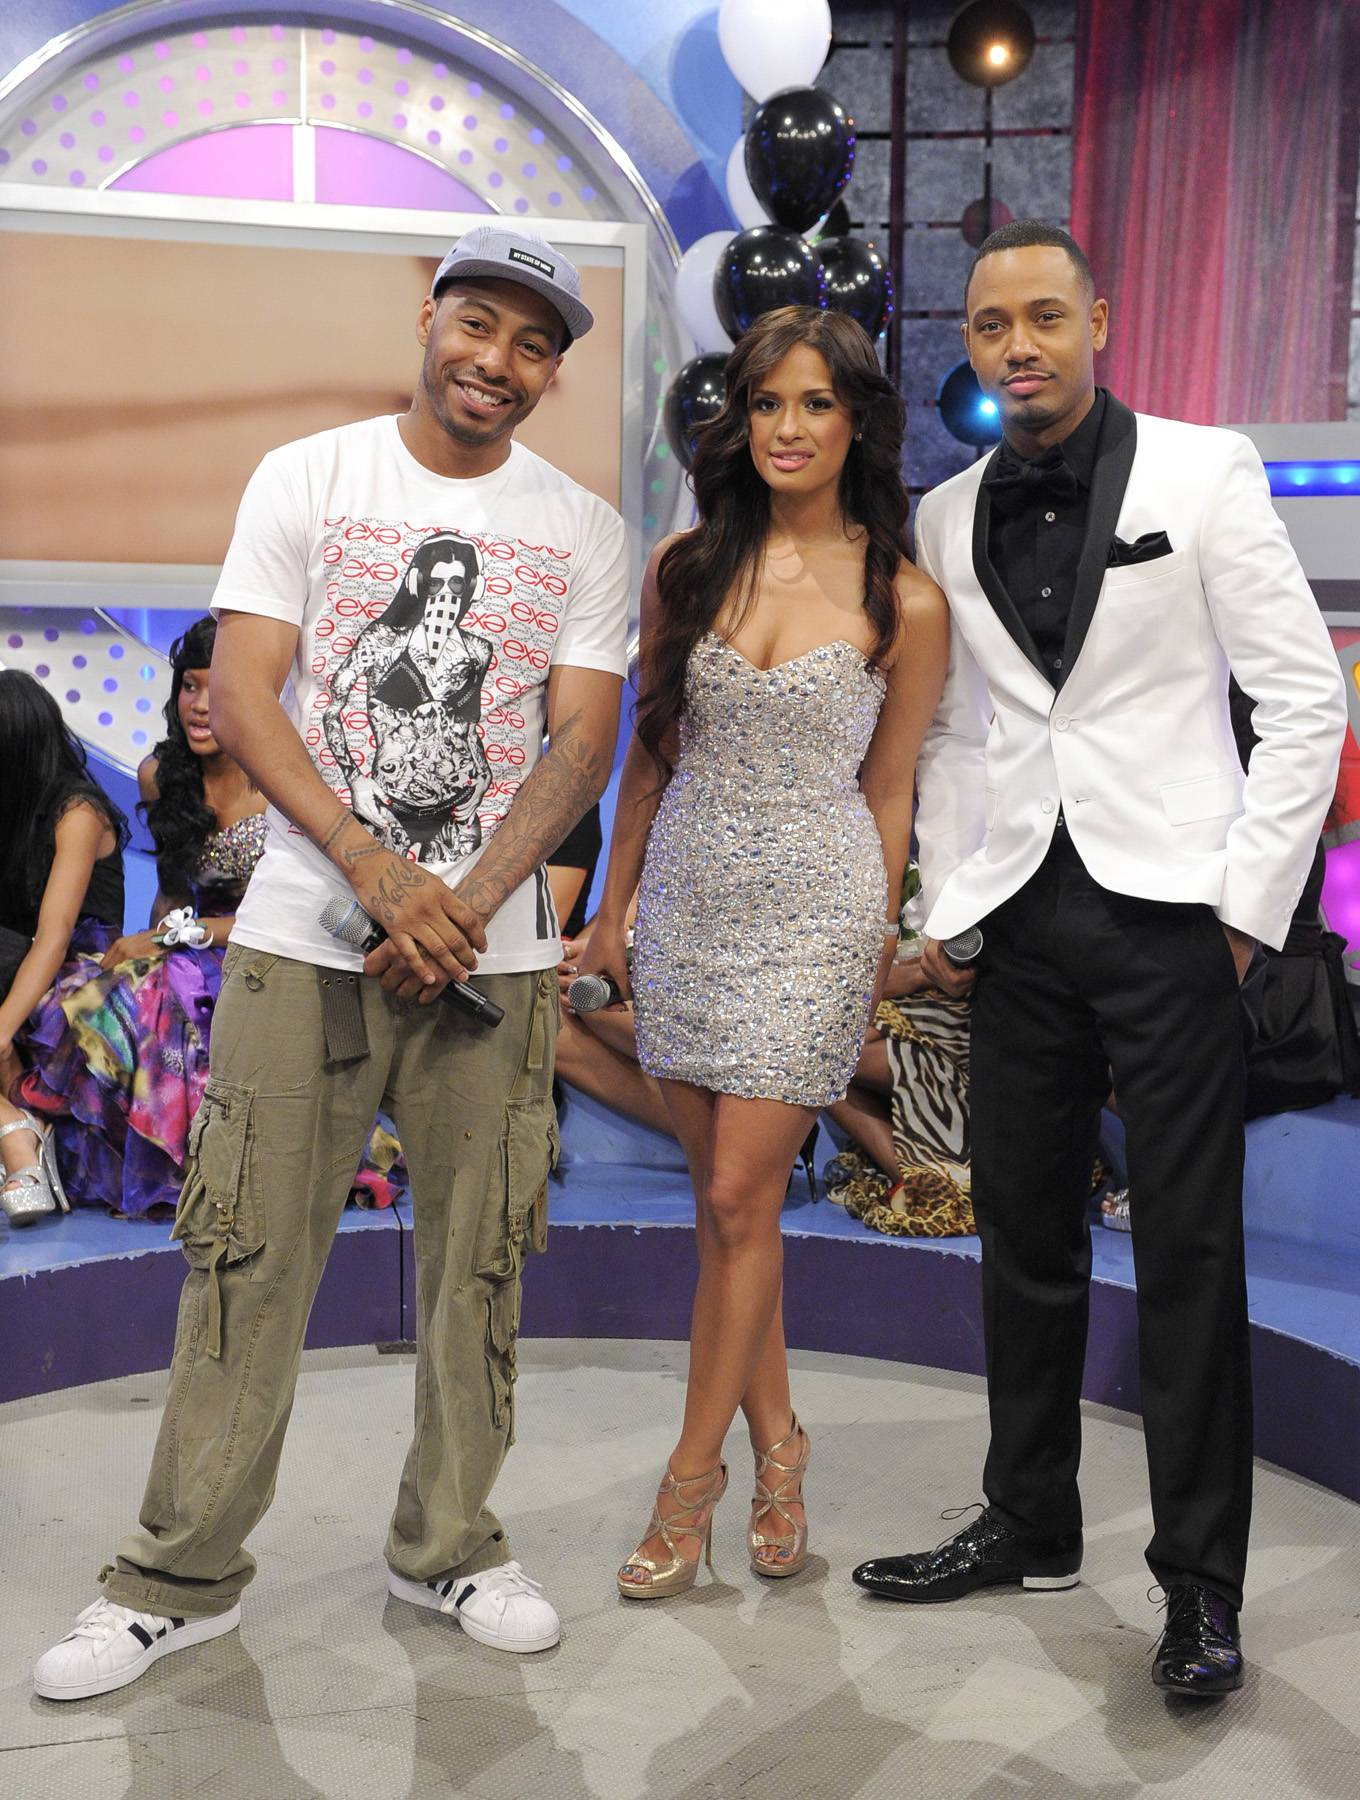 Here They Come - Bones Brigante with Rocsi Diaz and Terrence J at 106 & Park, May 25, 2012. (Photo: John Ricard / BET)